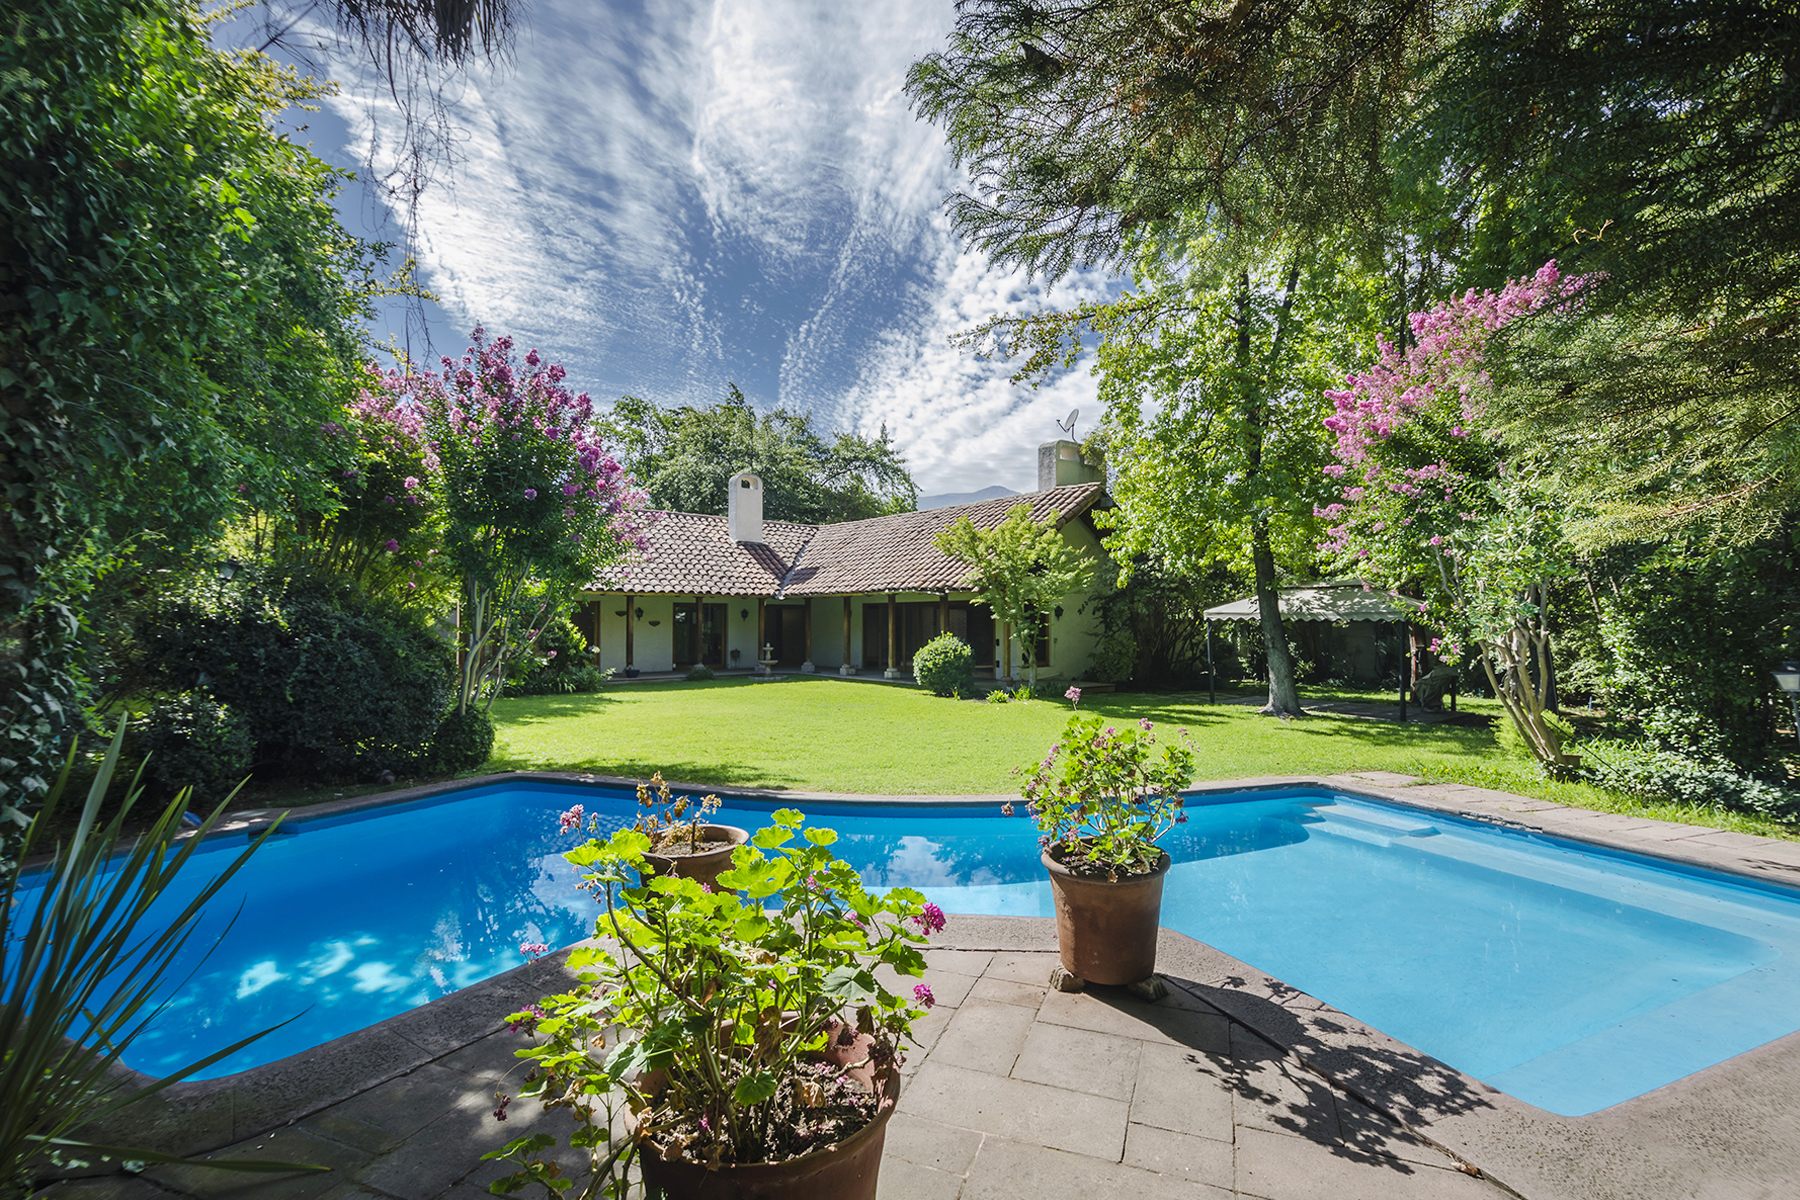 Single Family Home for Rent at Lovely Chilean House with Spectacular Garden - La Dehesa Lo Barnechea, Santiago, Region Metropolitana De Santiago Chile